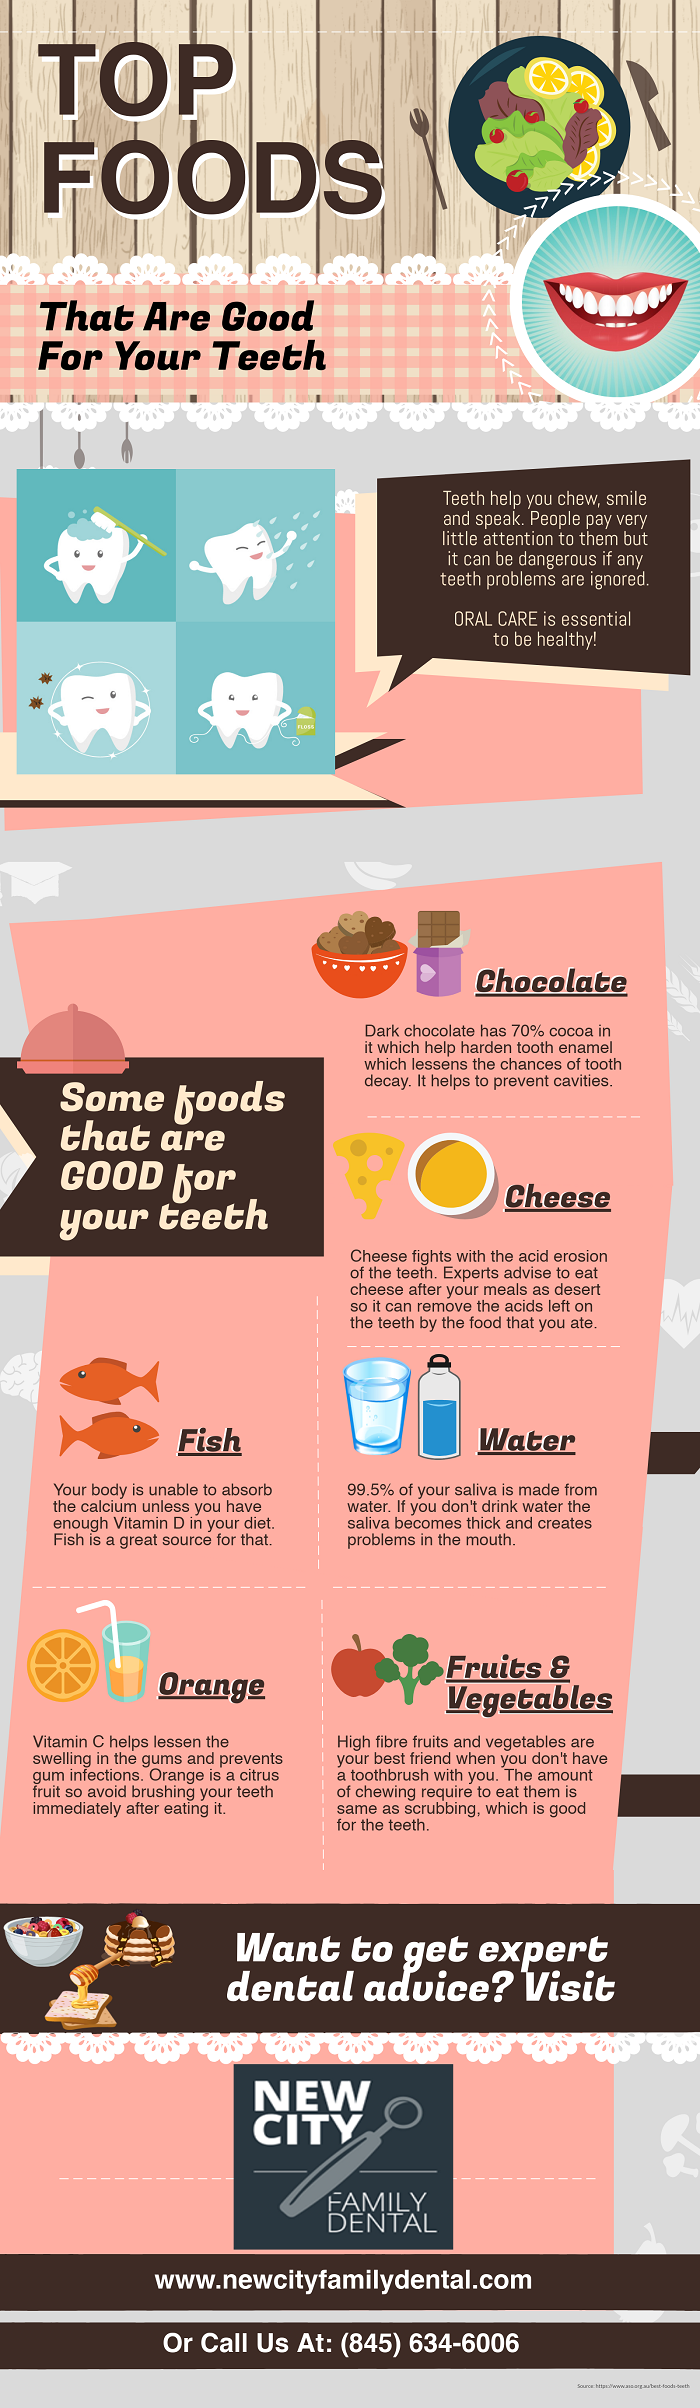 Top Foods That Are Good For Your Teeth